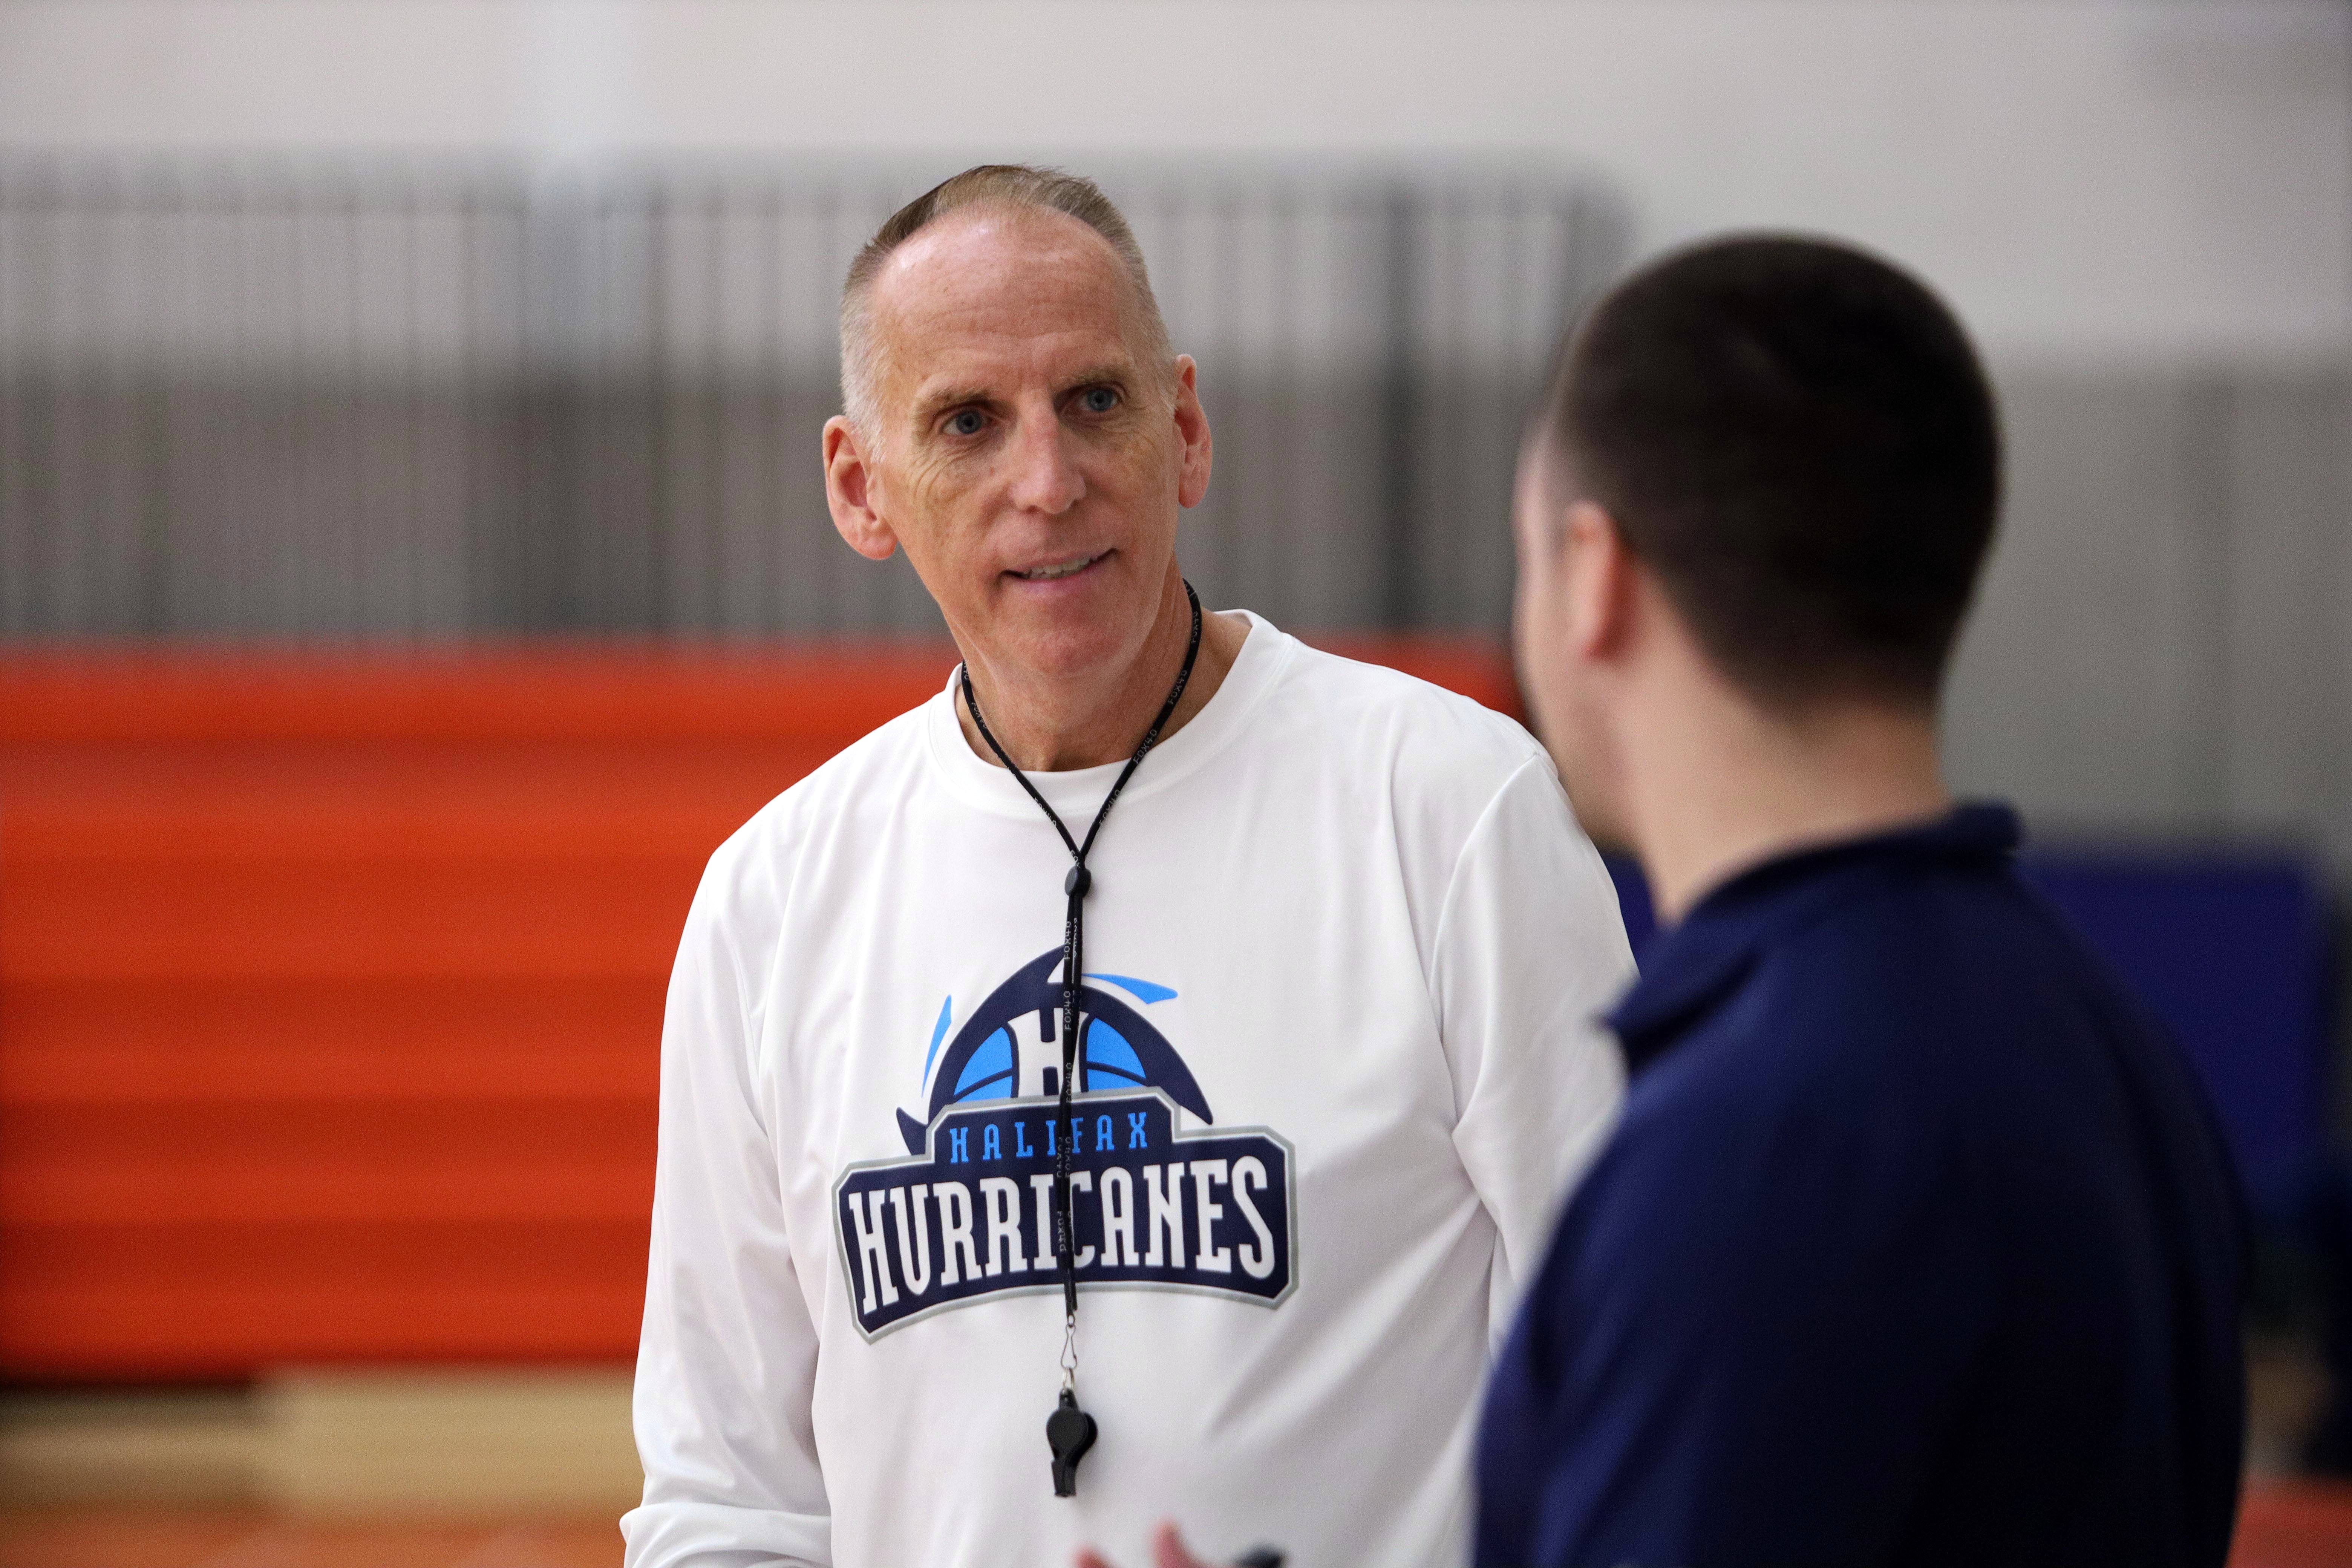 Former Halifax Hurricanes head coach Mike Leslie, seen here during the NBL Canada team's practice in 2019, has taken over the head coaching position with the Acadia Axemen on an interim basis. - ERIC WYNNE / The Chronicle Herald